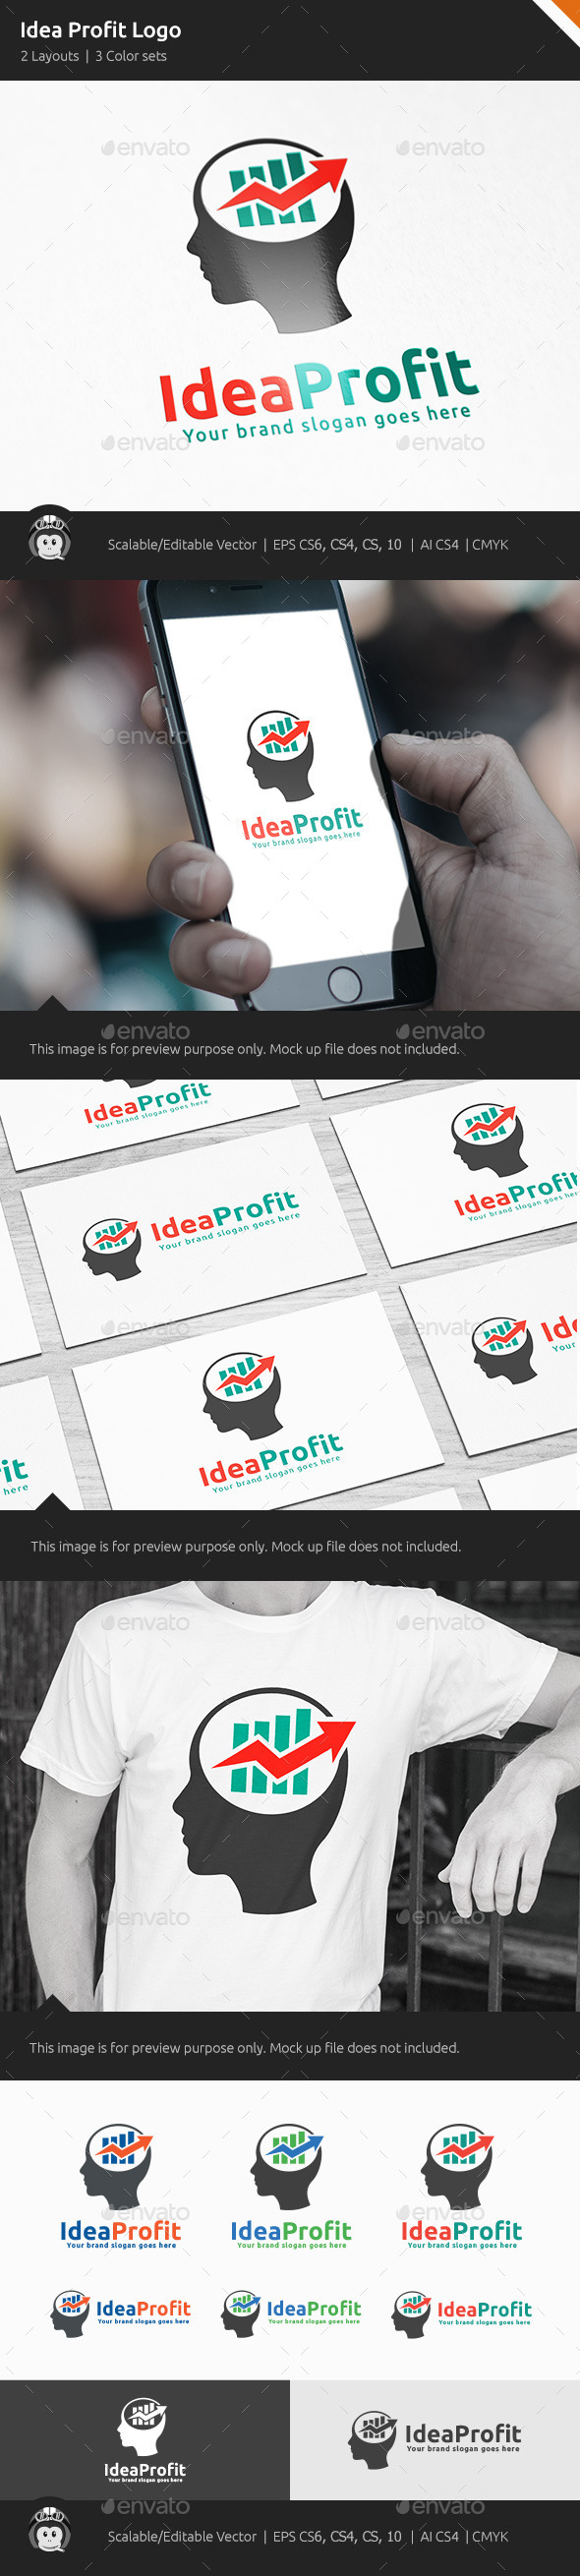 Idea Profit Marketing Logo - Vector Abstract